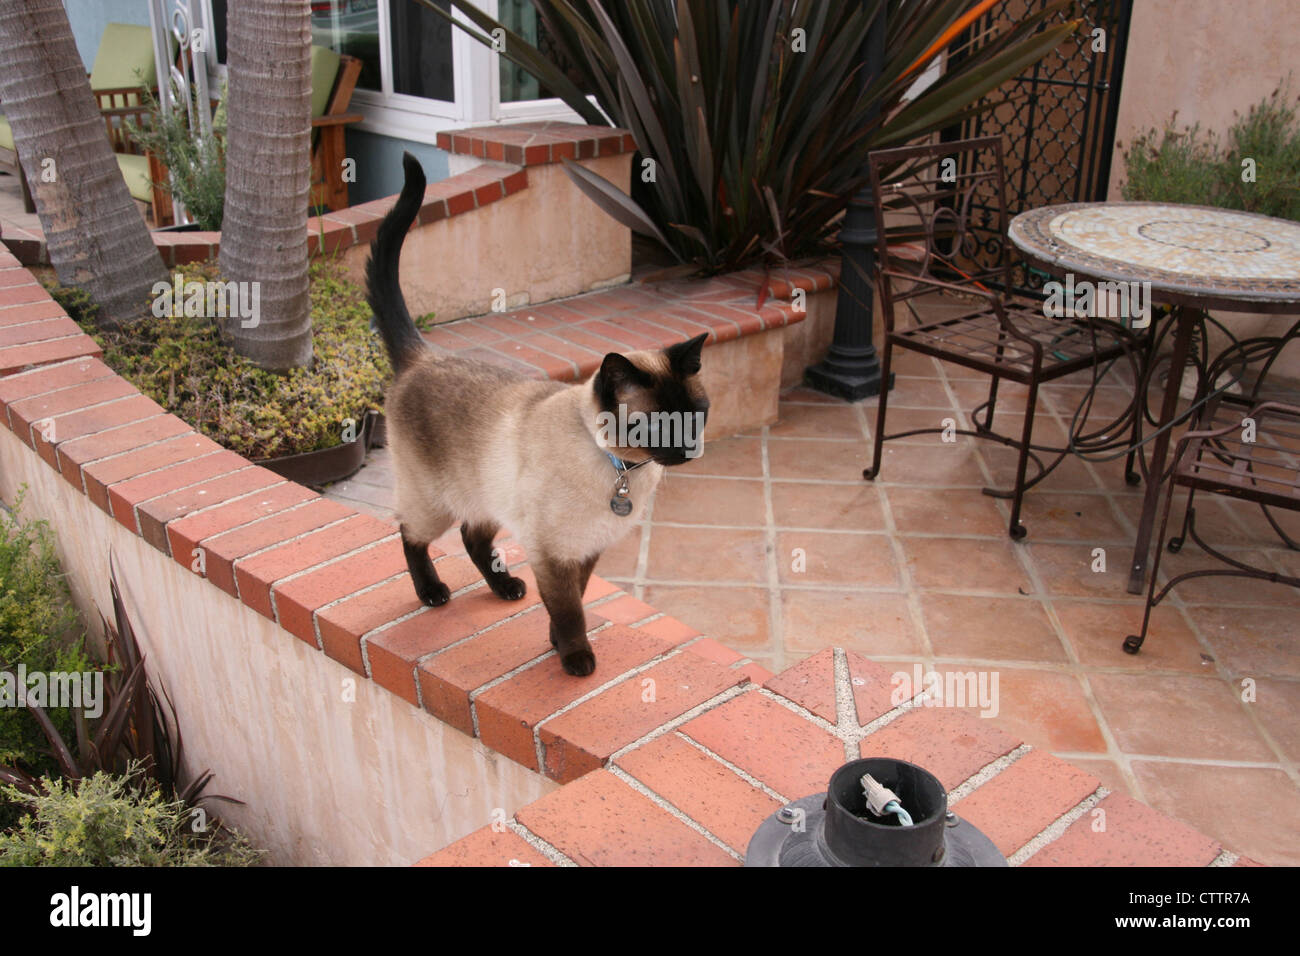 This shows a chocolate-point Siamese cat standing on a brick and ...